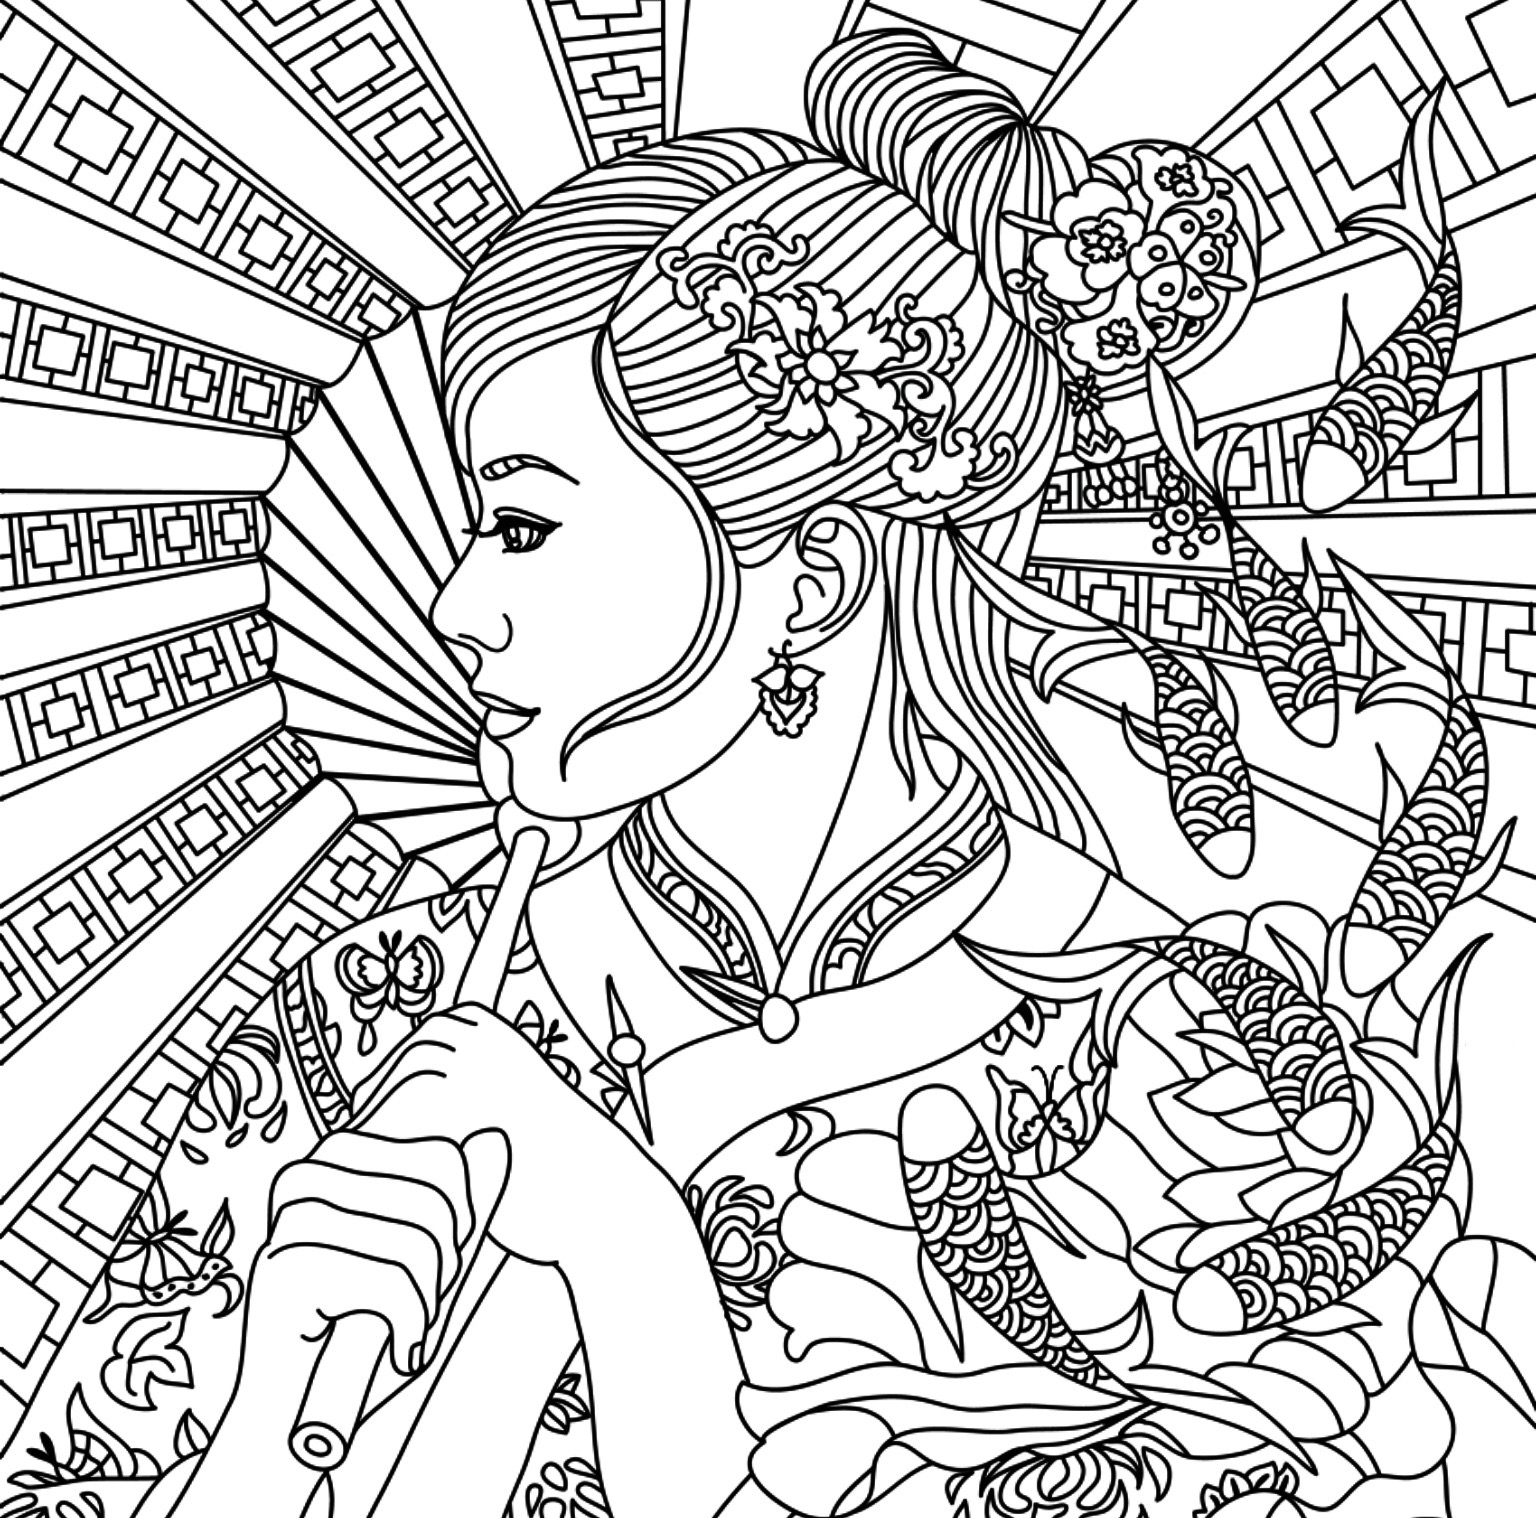 full size coloring pages full page coloring pages disney at getdrawings free download pages full coloring size